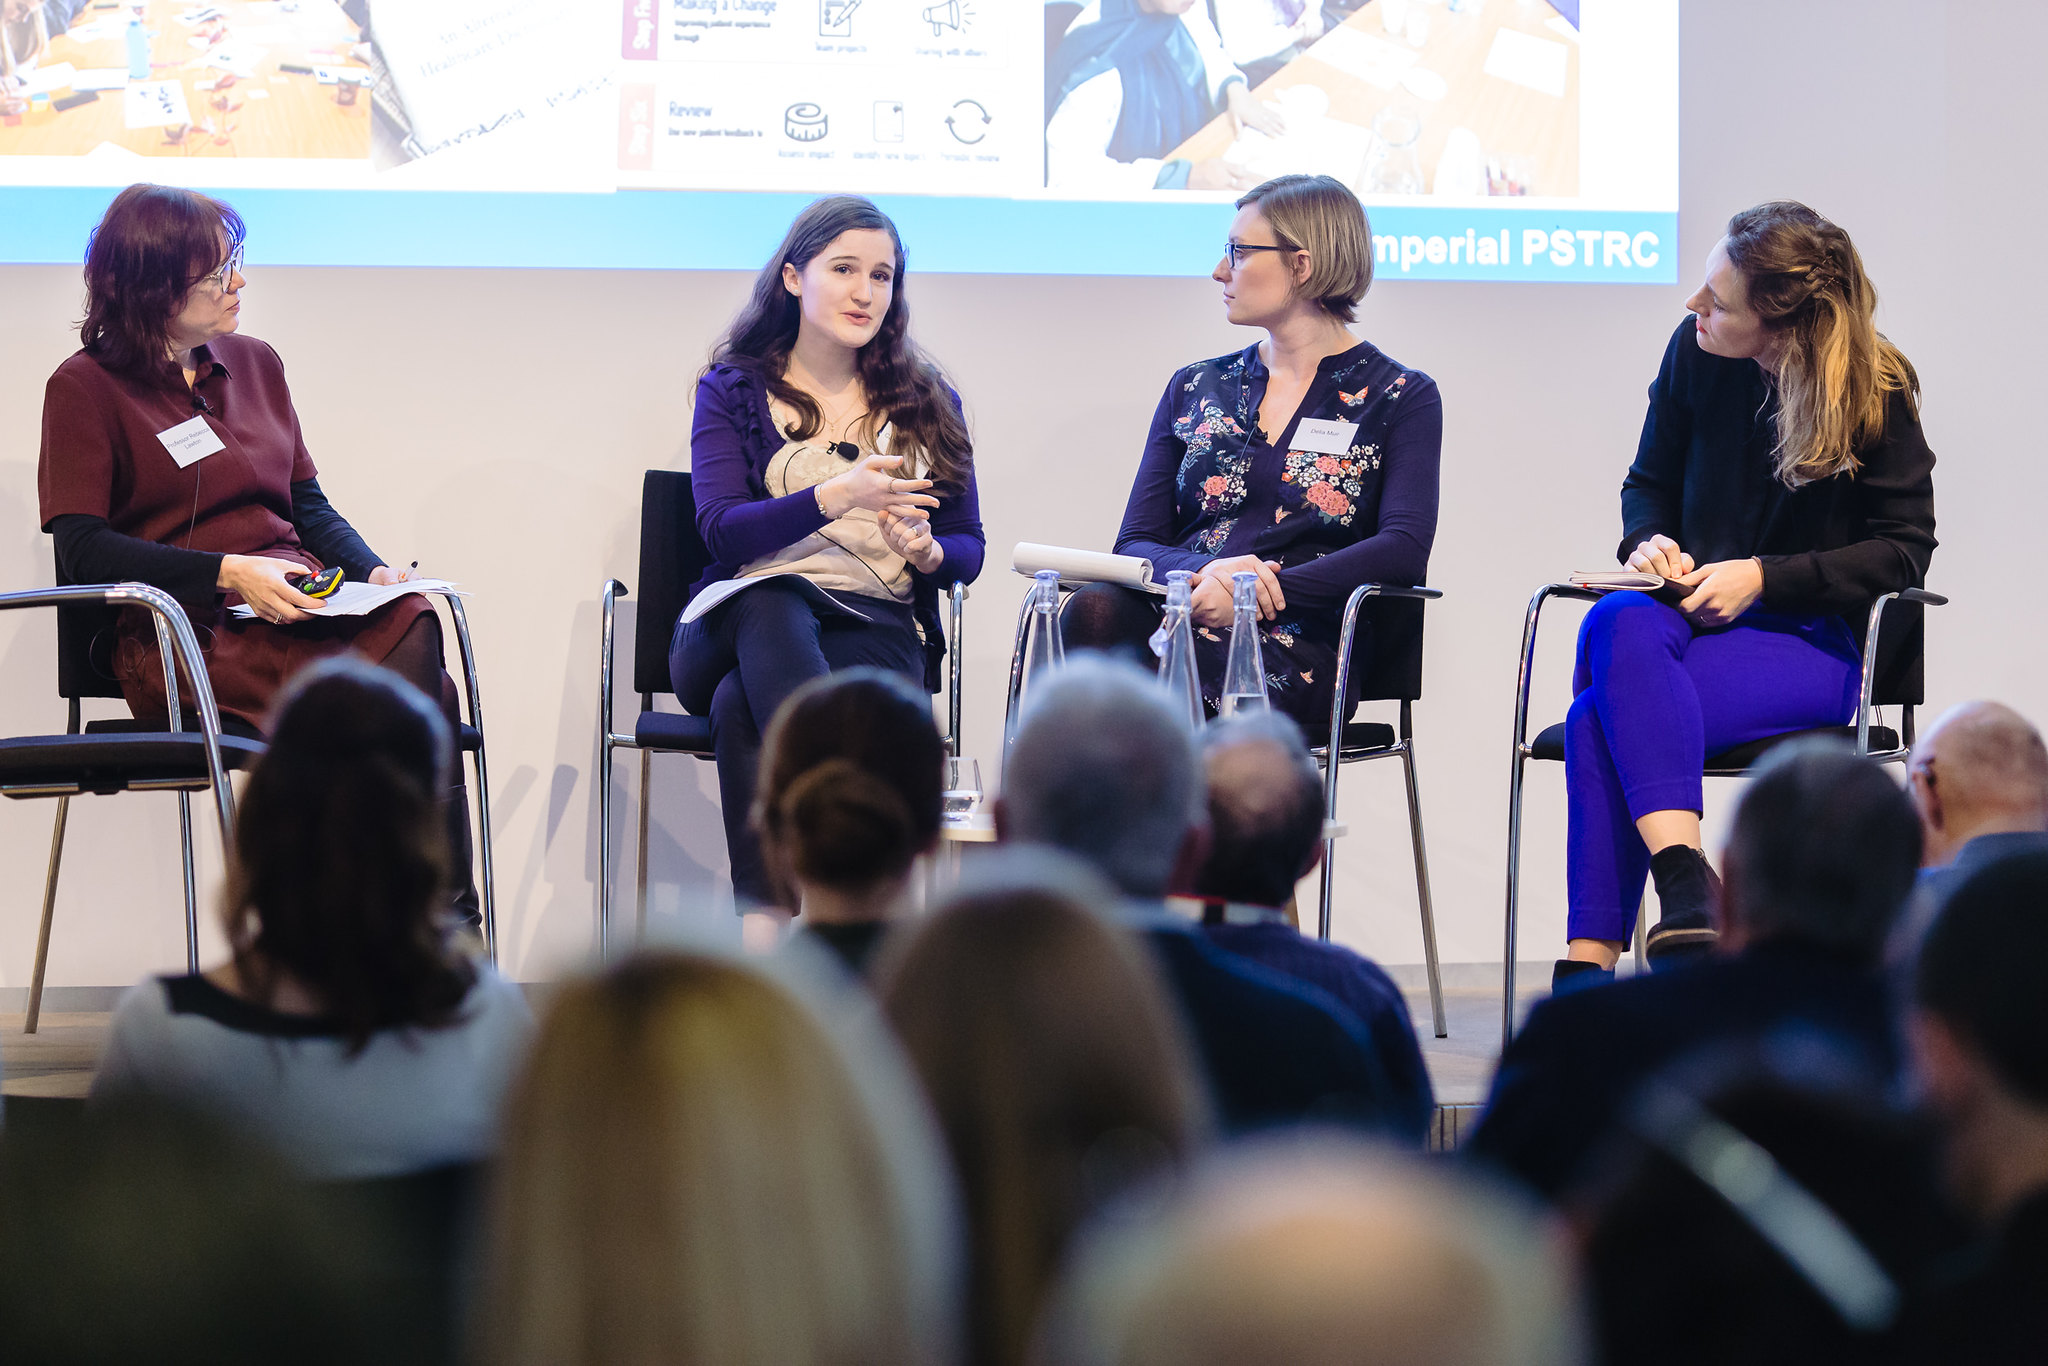 A photograph of an all-female panel discussing research involvement at a conference